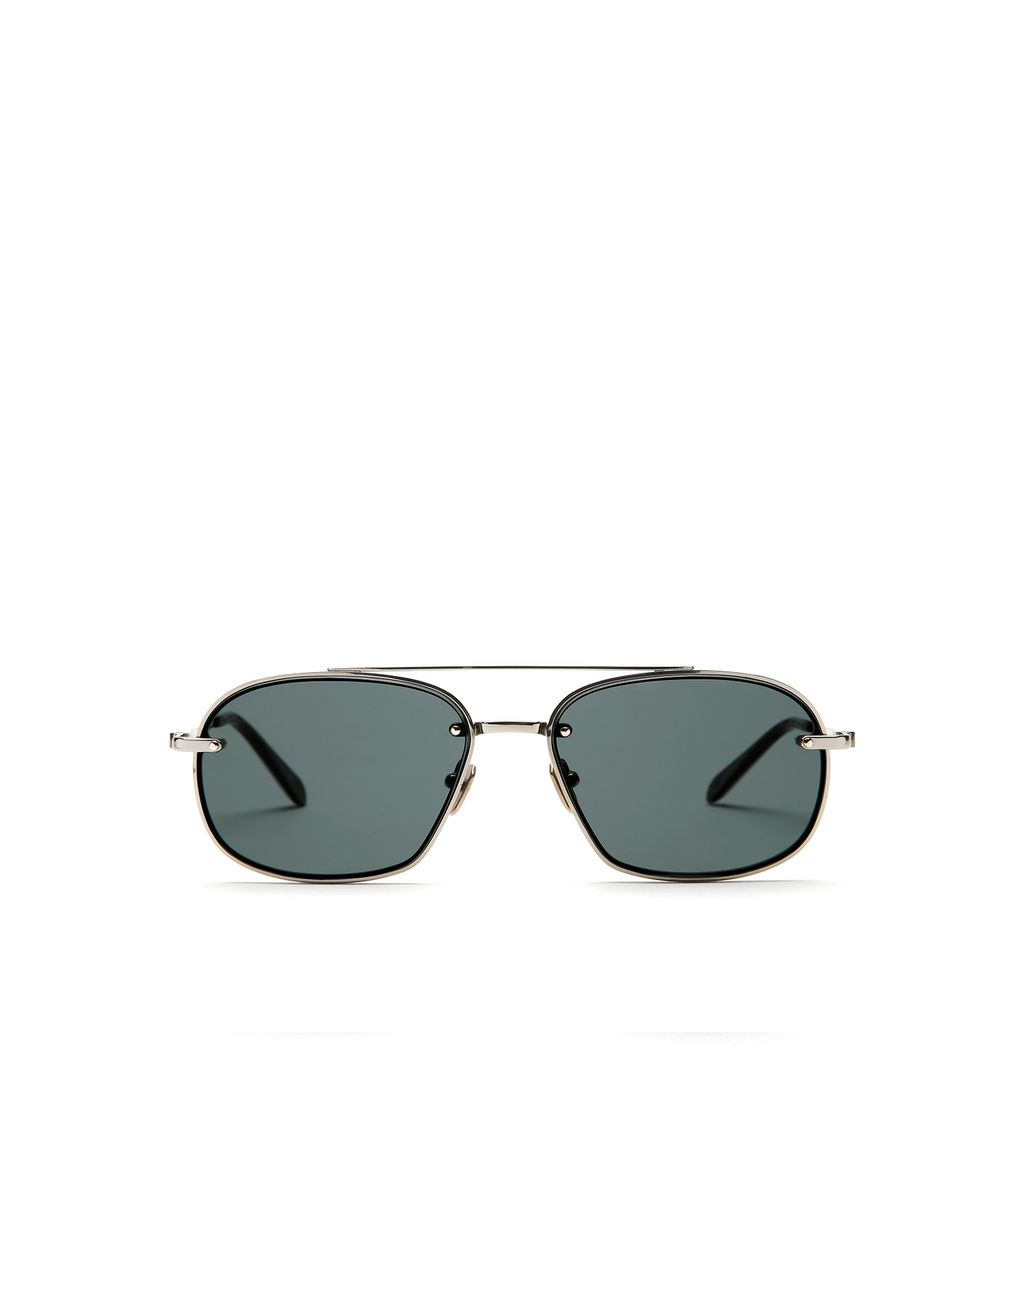 BRIONI Havana Geometric Shape Sunglasses with Grey Lenses   Sunglasses [*** pickupInStoreShippingNotGuaranteed_info ***] f